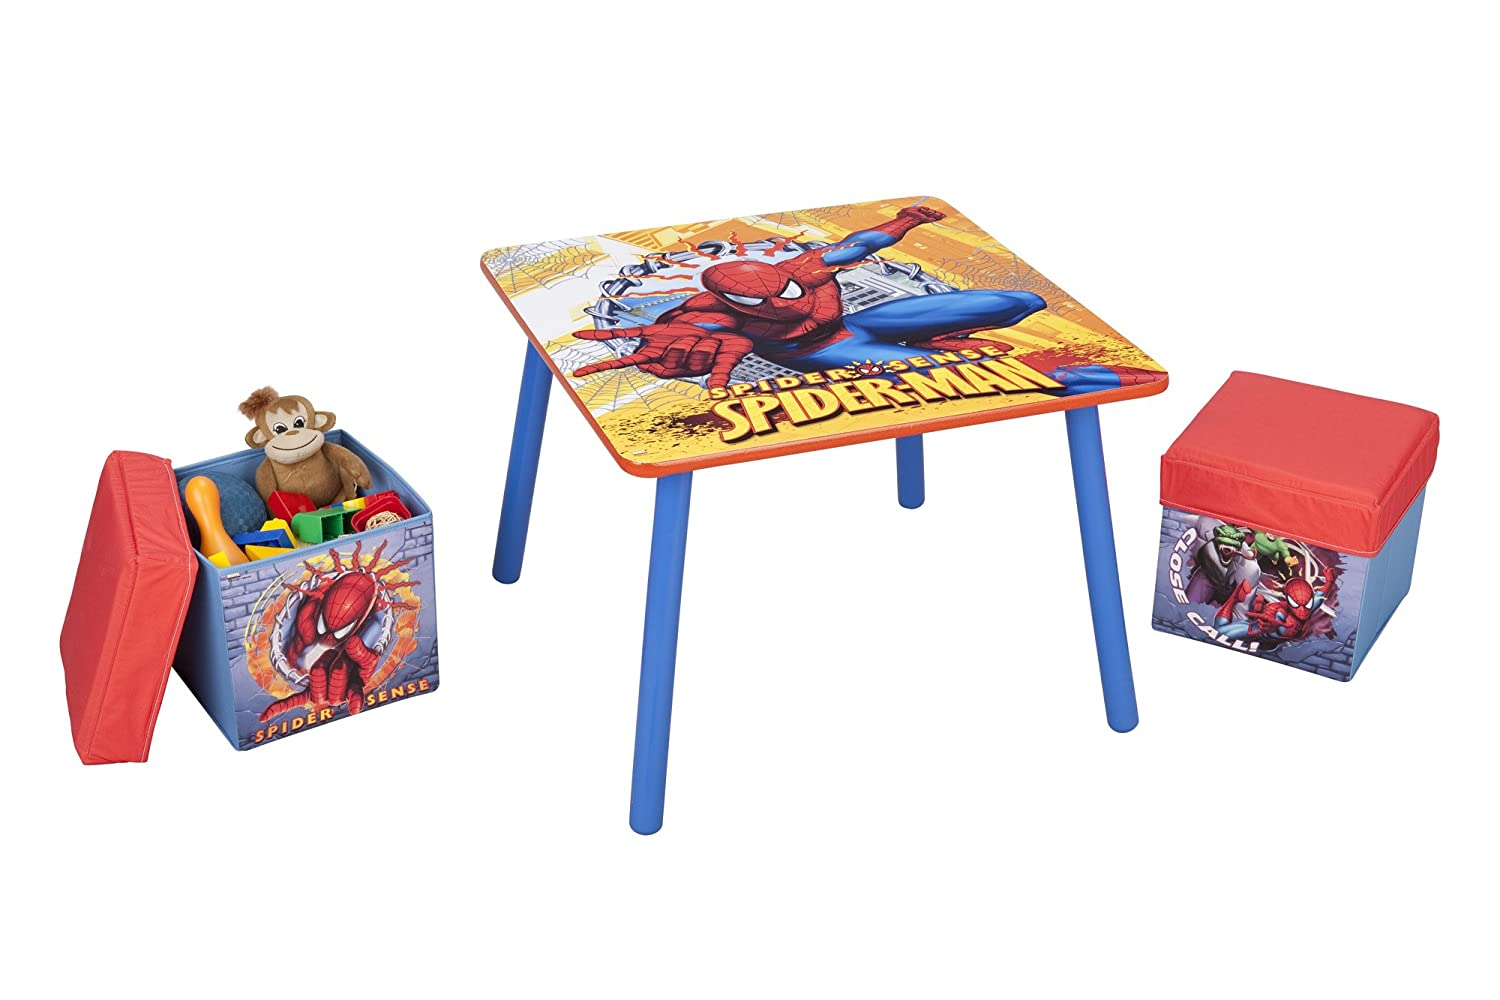 spiderman table and chairs redman power chair reviews furniture totally kids bedrooms